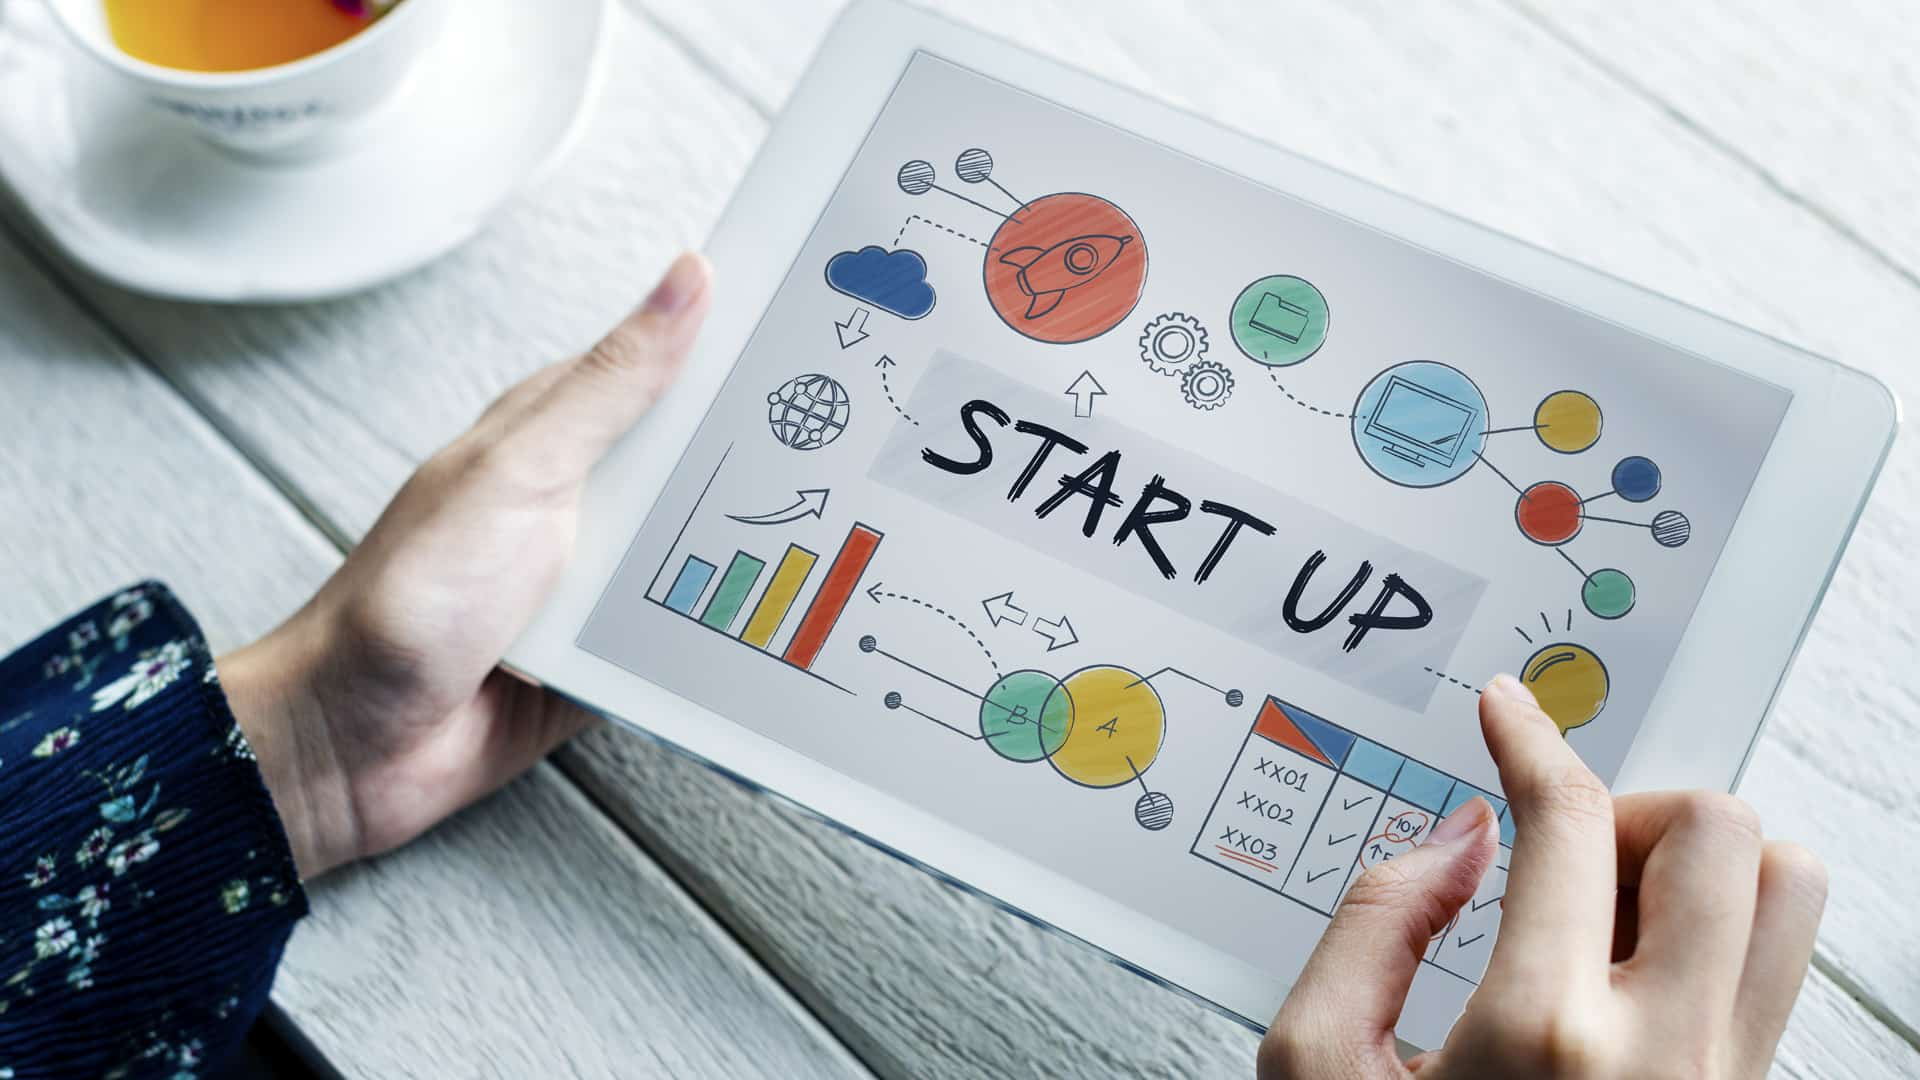 ADIF aims to make Indian startup ecosystem among top 3 globally by 2030